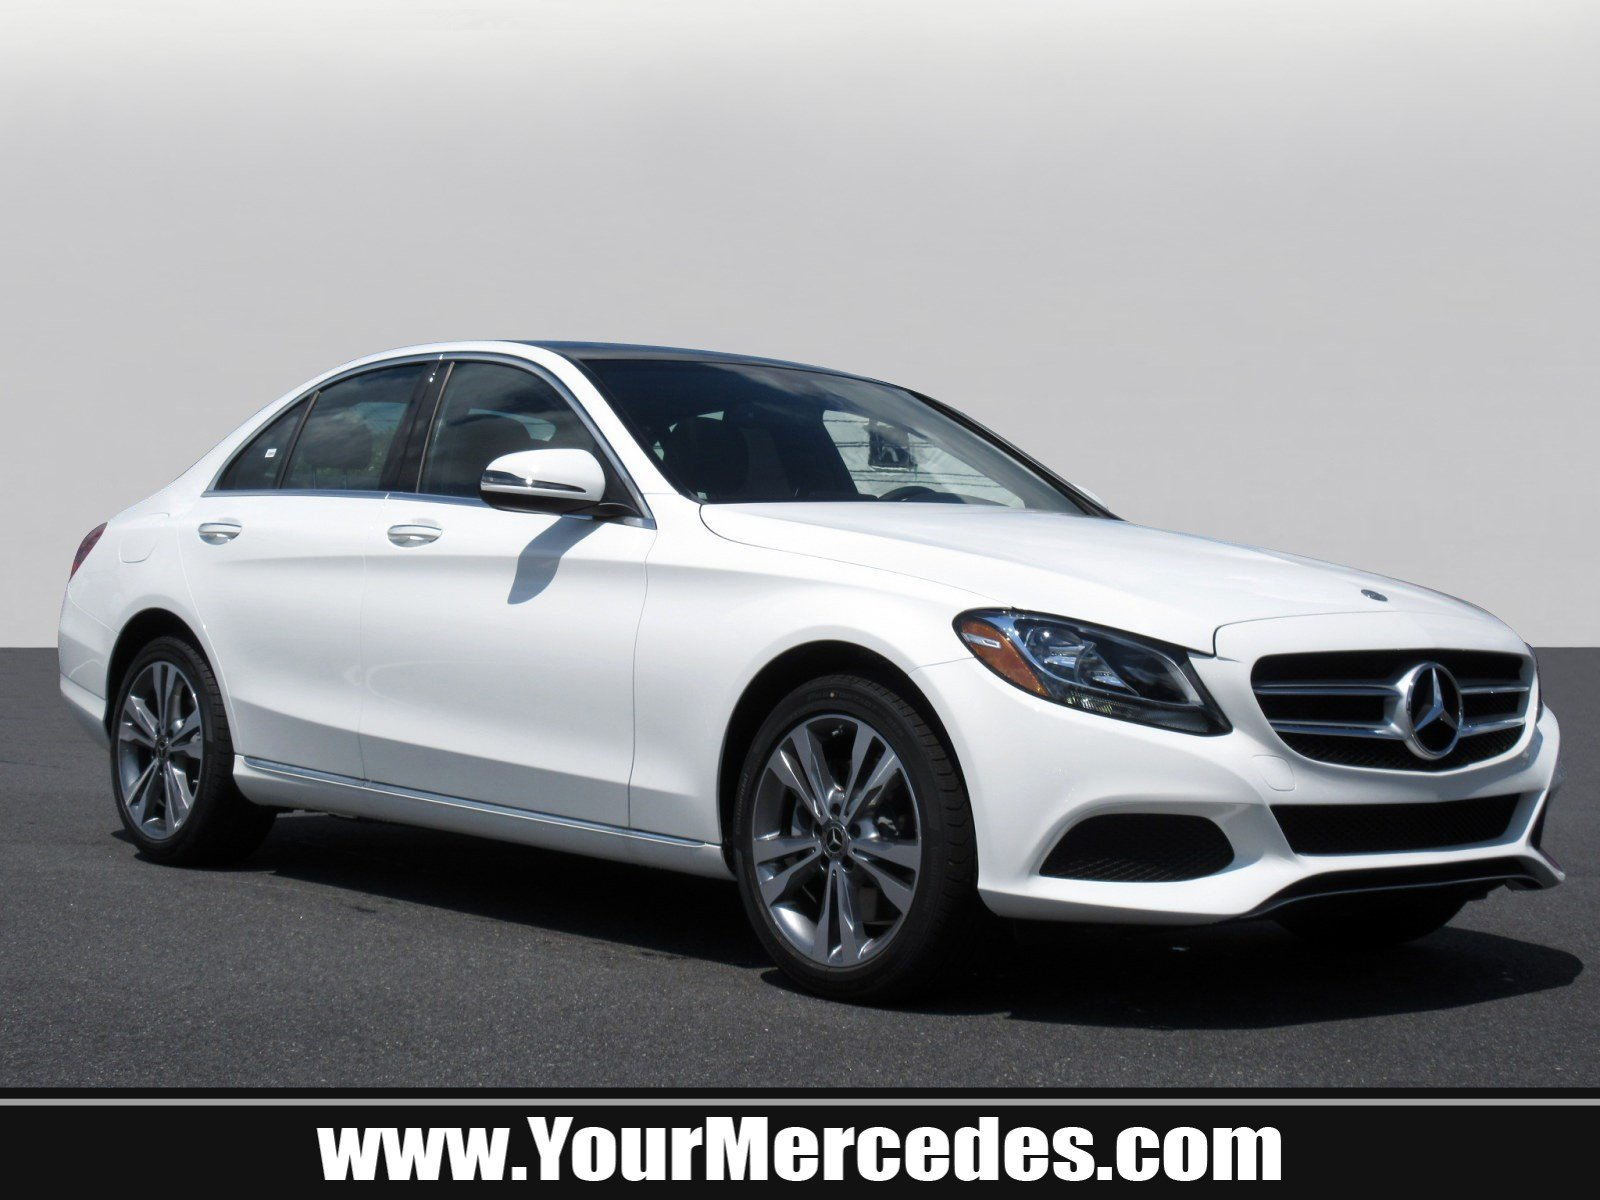 New 2018 Mercedes Benz C Class 300 4dr Car In West Chester 2002 C240 I Connect Indicatorbraketail Lampswiring